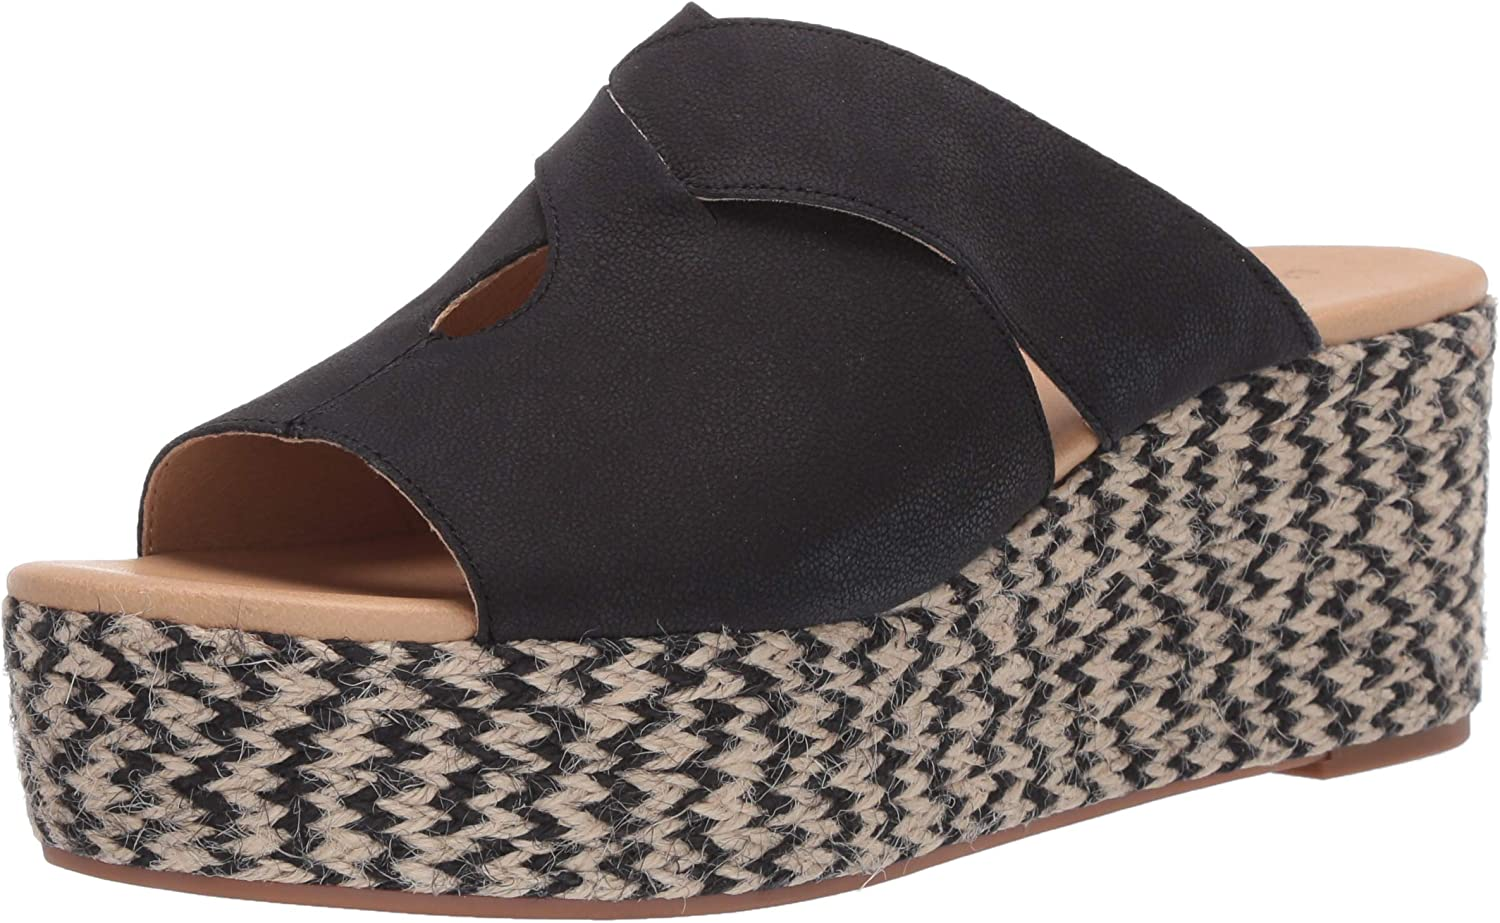 Lucky Brand Product Limited time sale Women's Genzy Sandal Espadrille Wedge